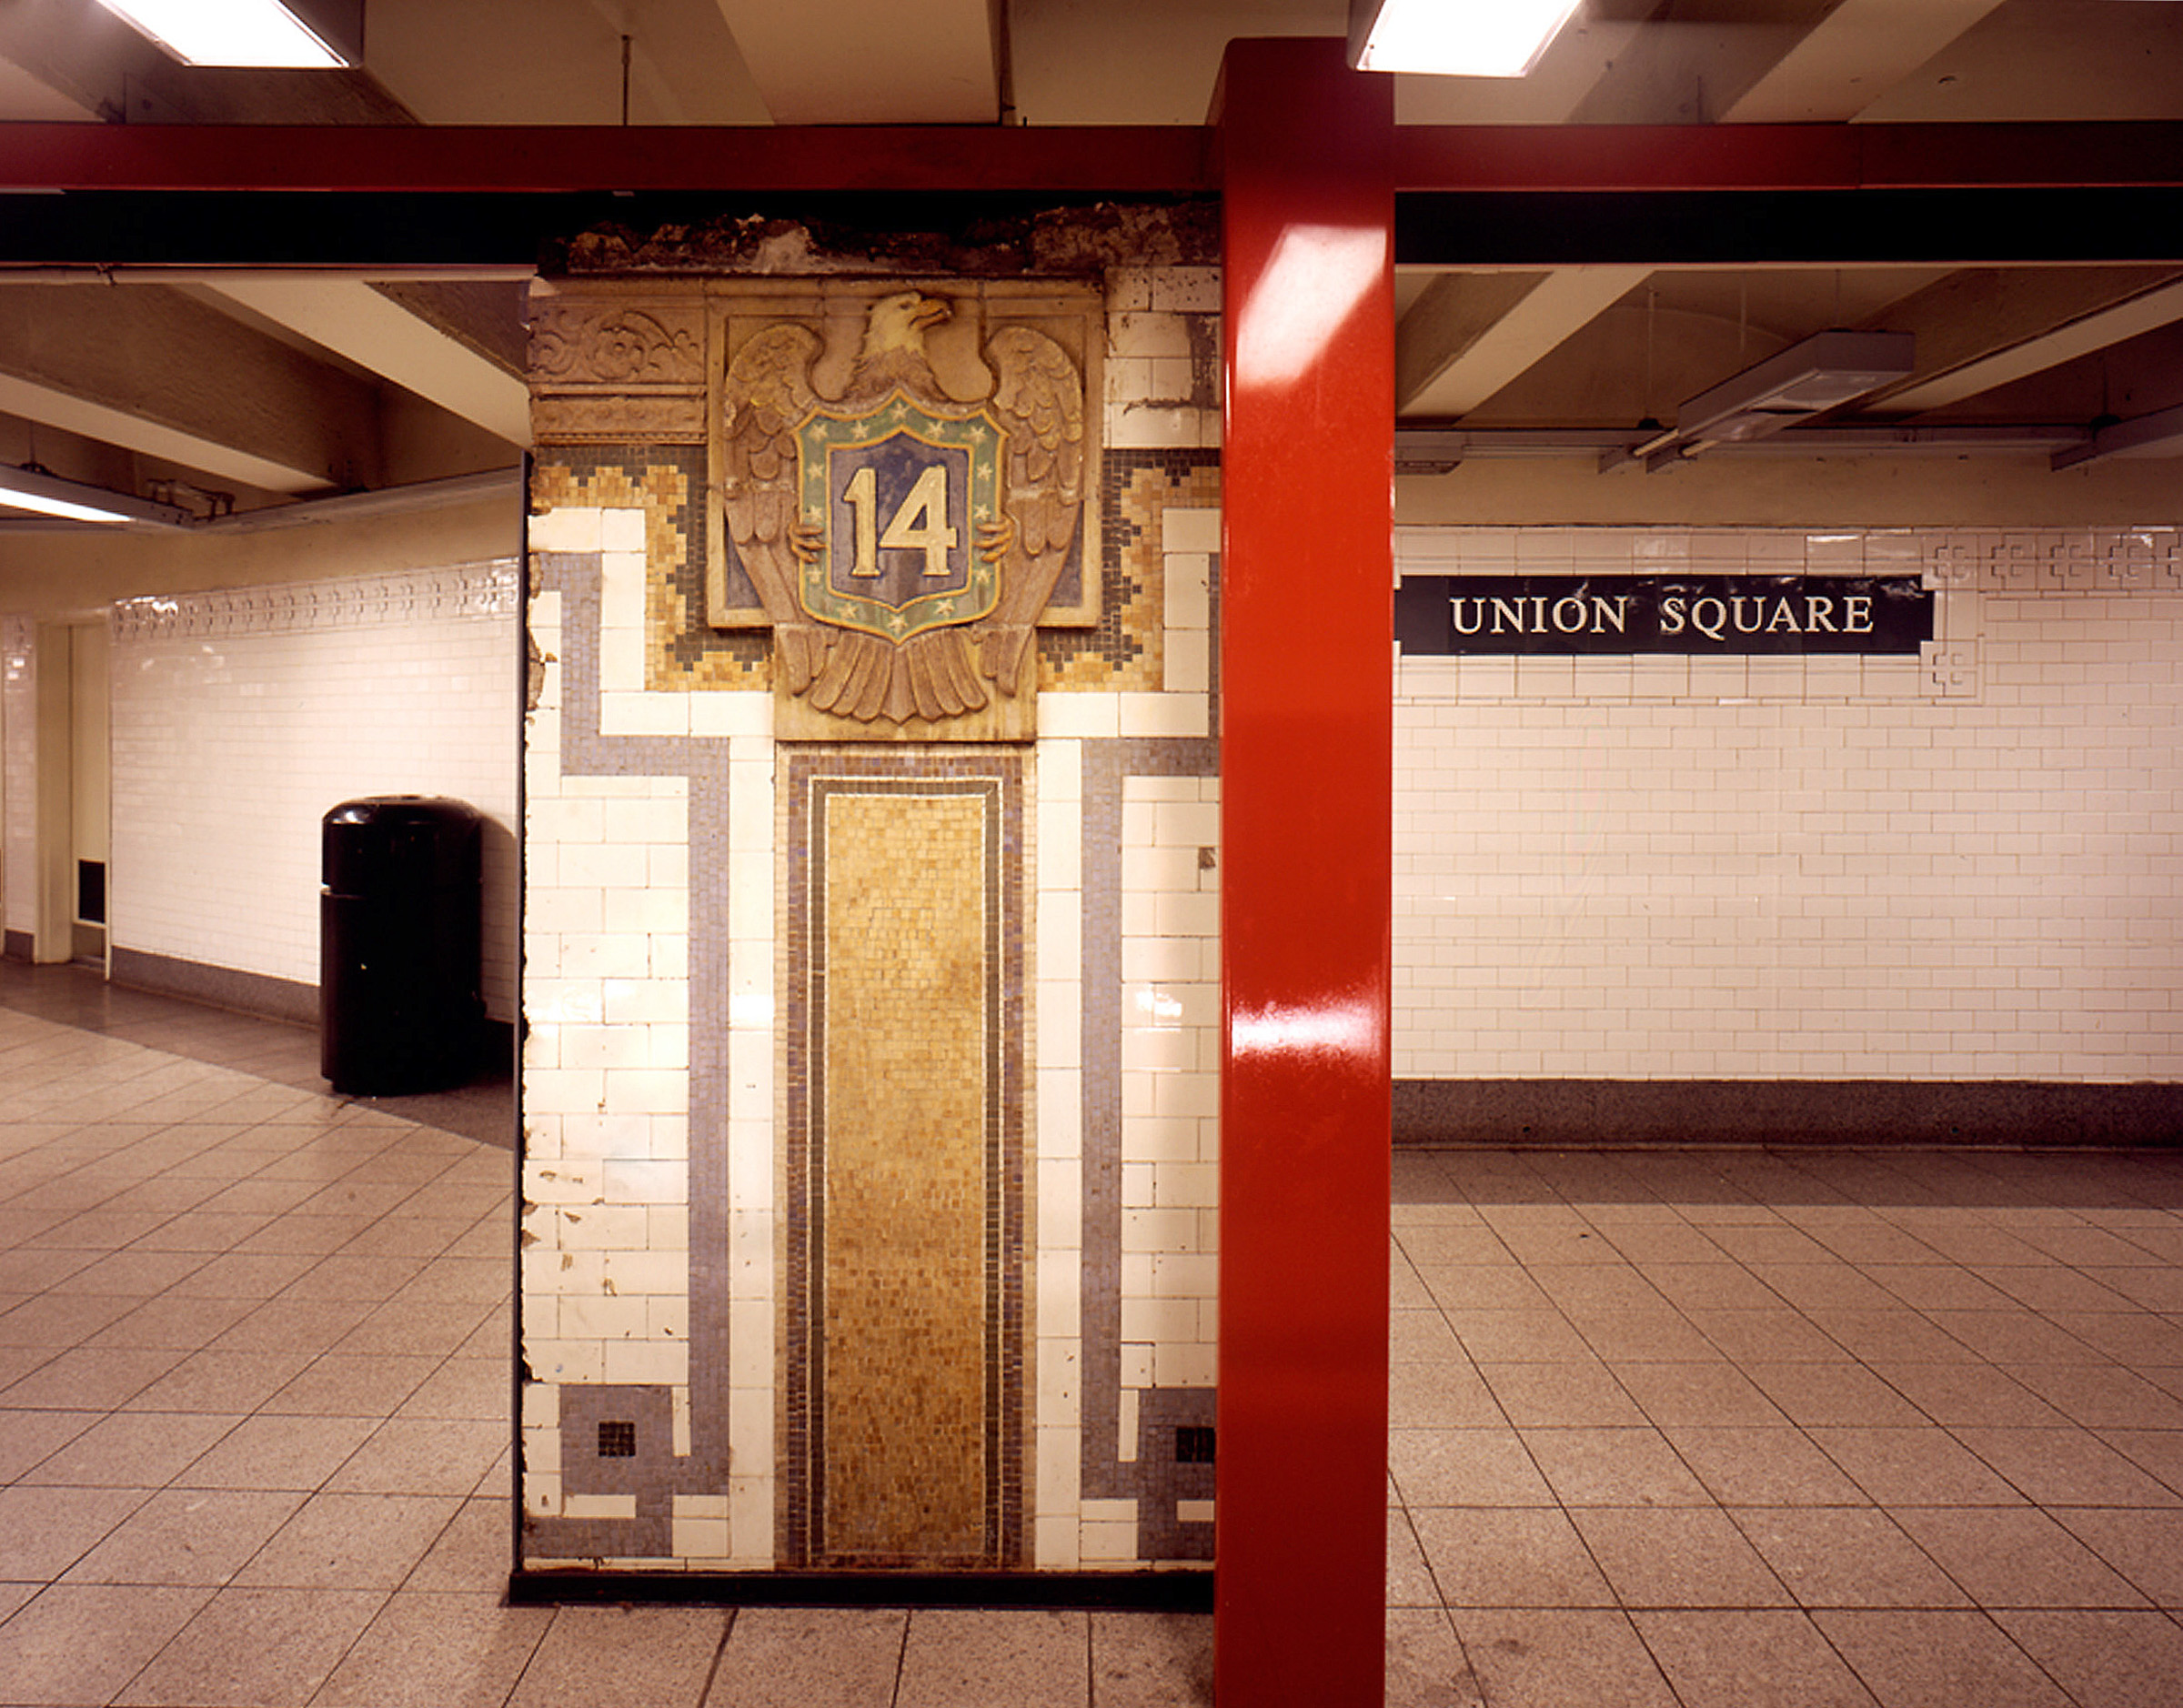 14th Street Union Square Subway